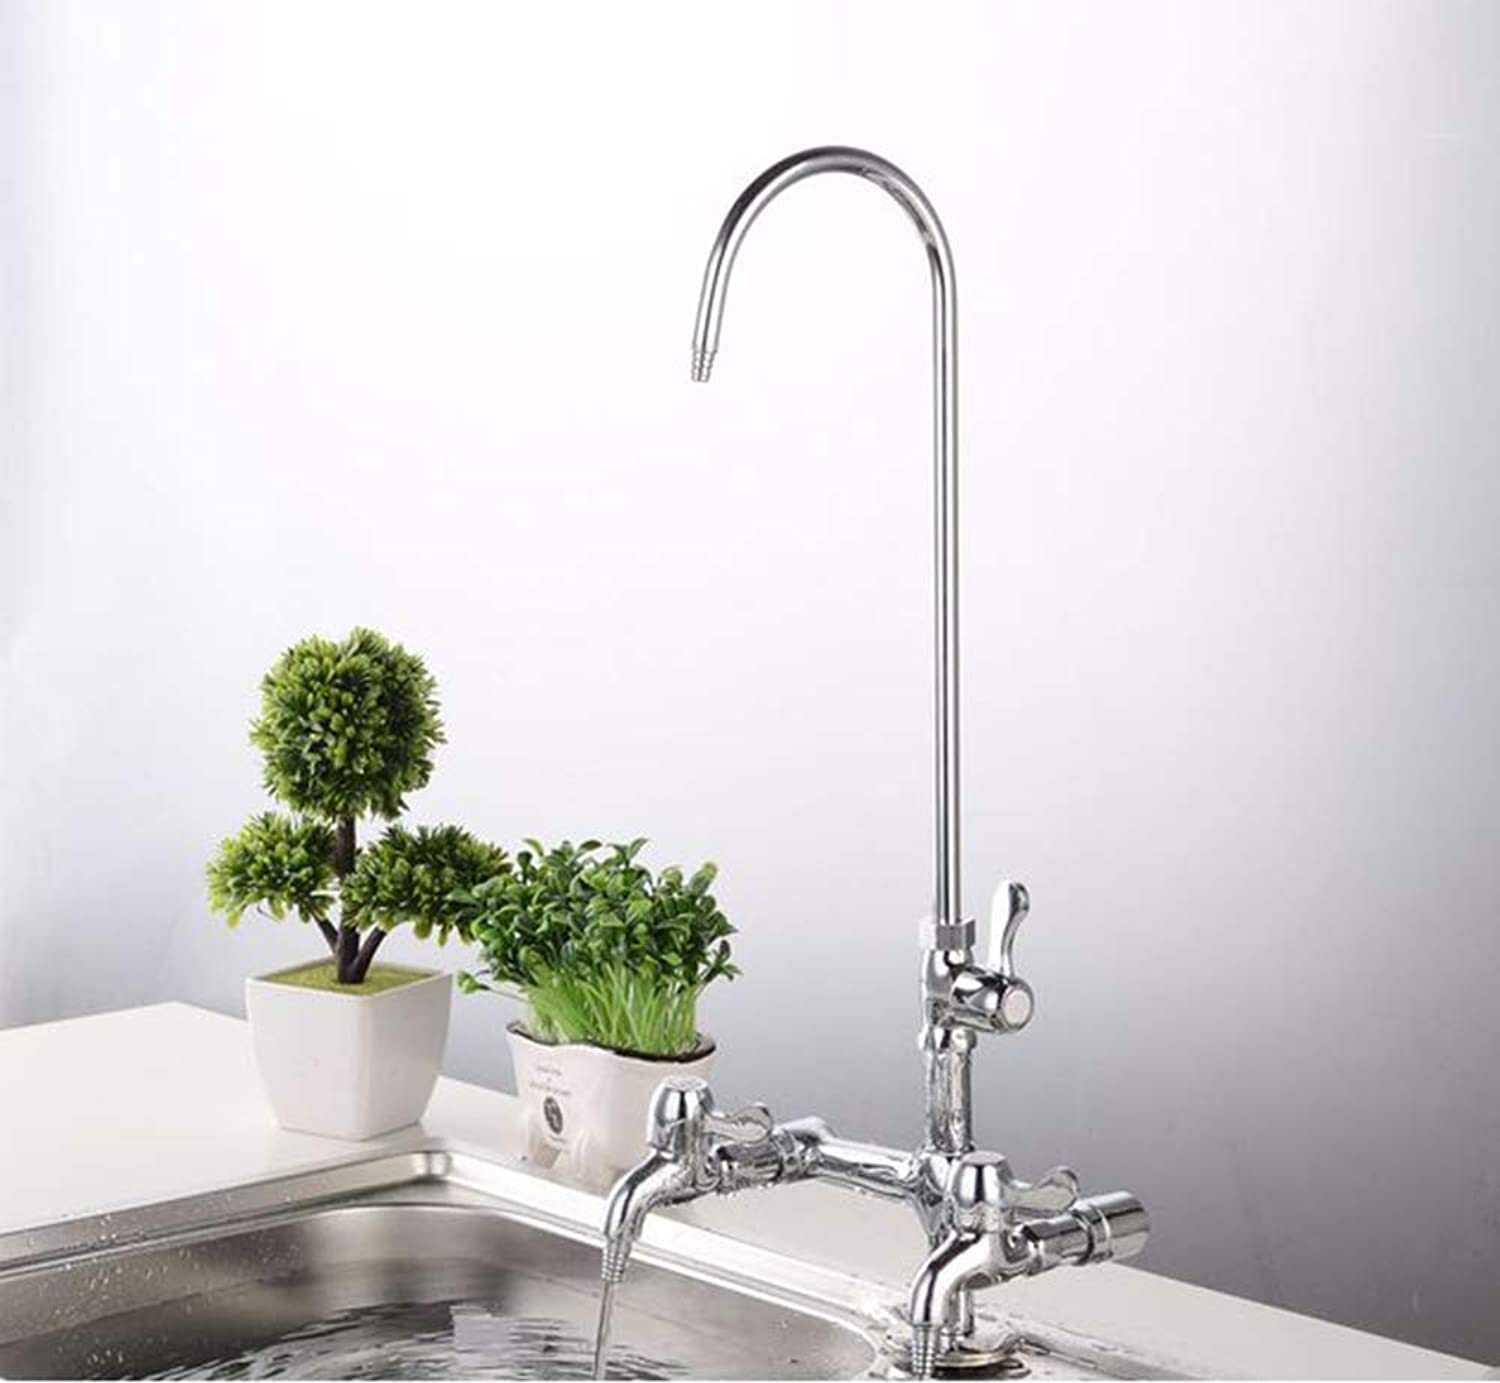 ZFXNB Kitchen Faucet, Kitchen Tap Bathroom Sink Mixer Tap 360 Degree redating Spout Chrome-Plated Copper Body Single Lever Hot